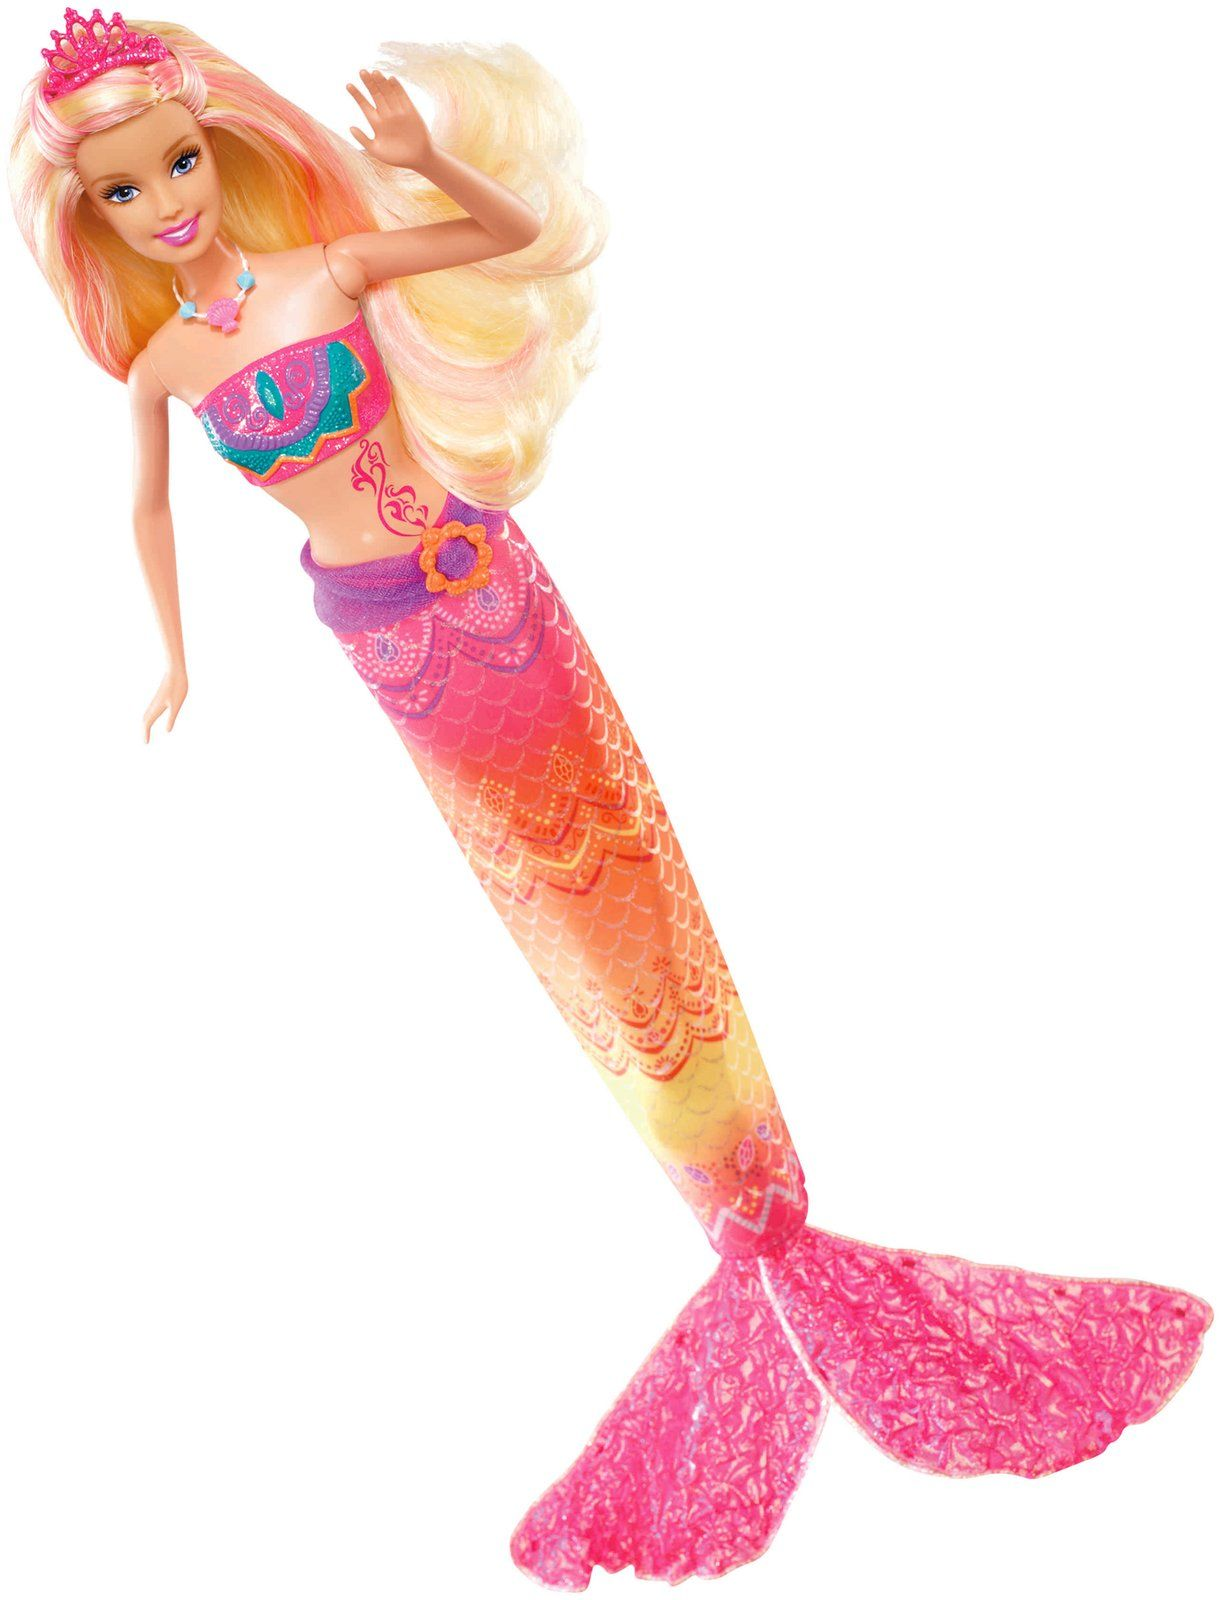 Barbie In Doll Shop For Other Barbie Products Mermaid Barbie